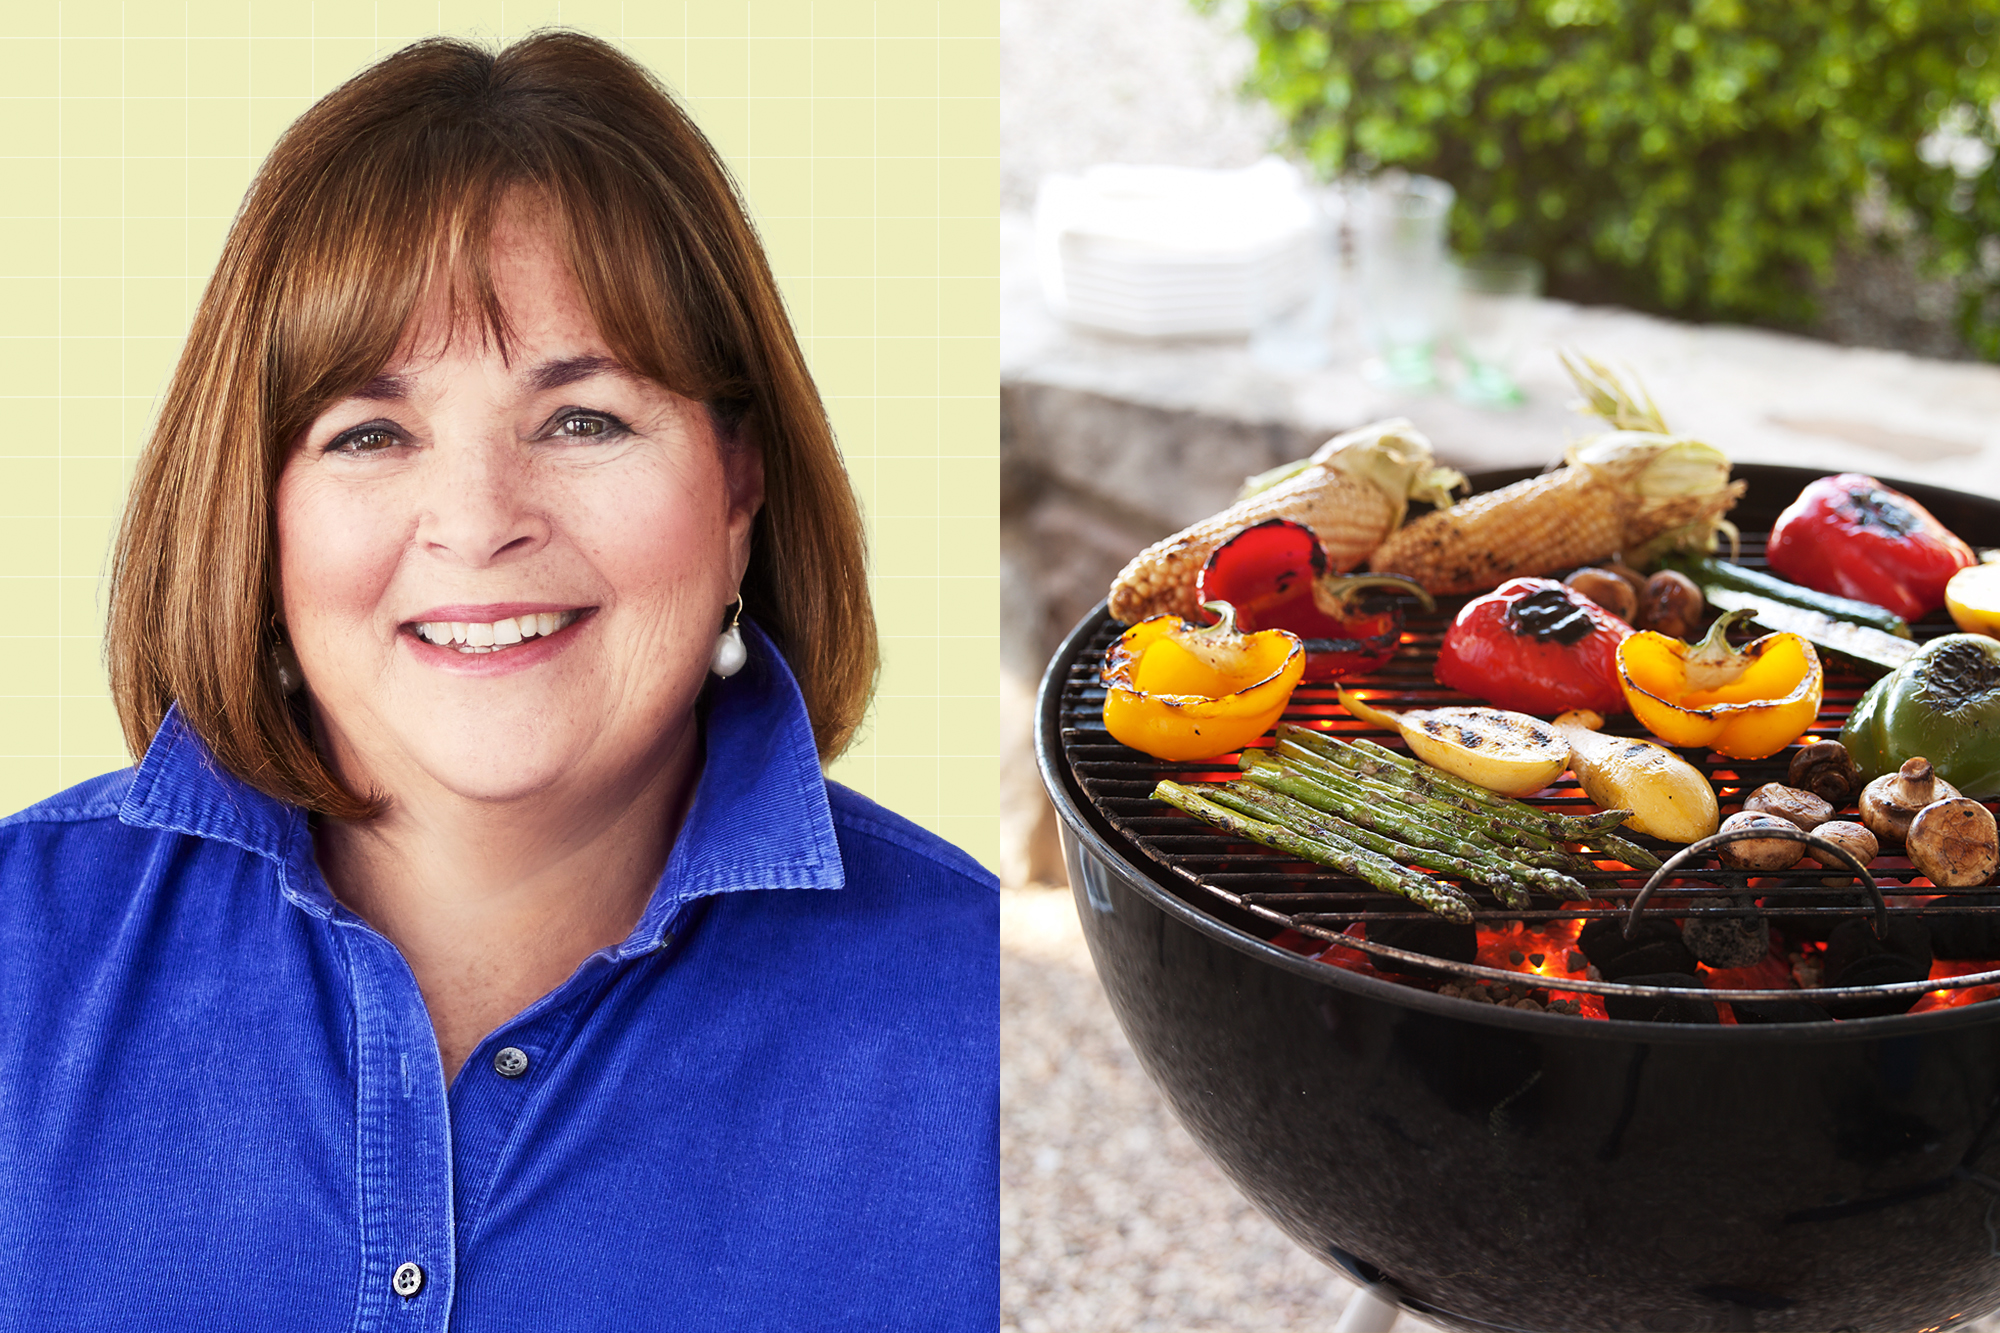 Ina Garten on a designed background next to a picture of a grill with vegetables on it